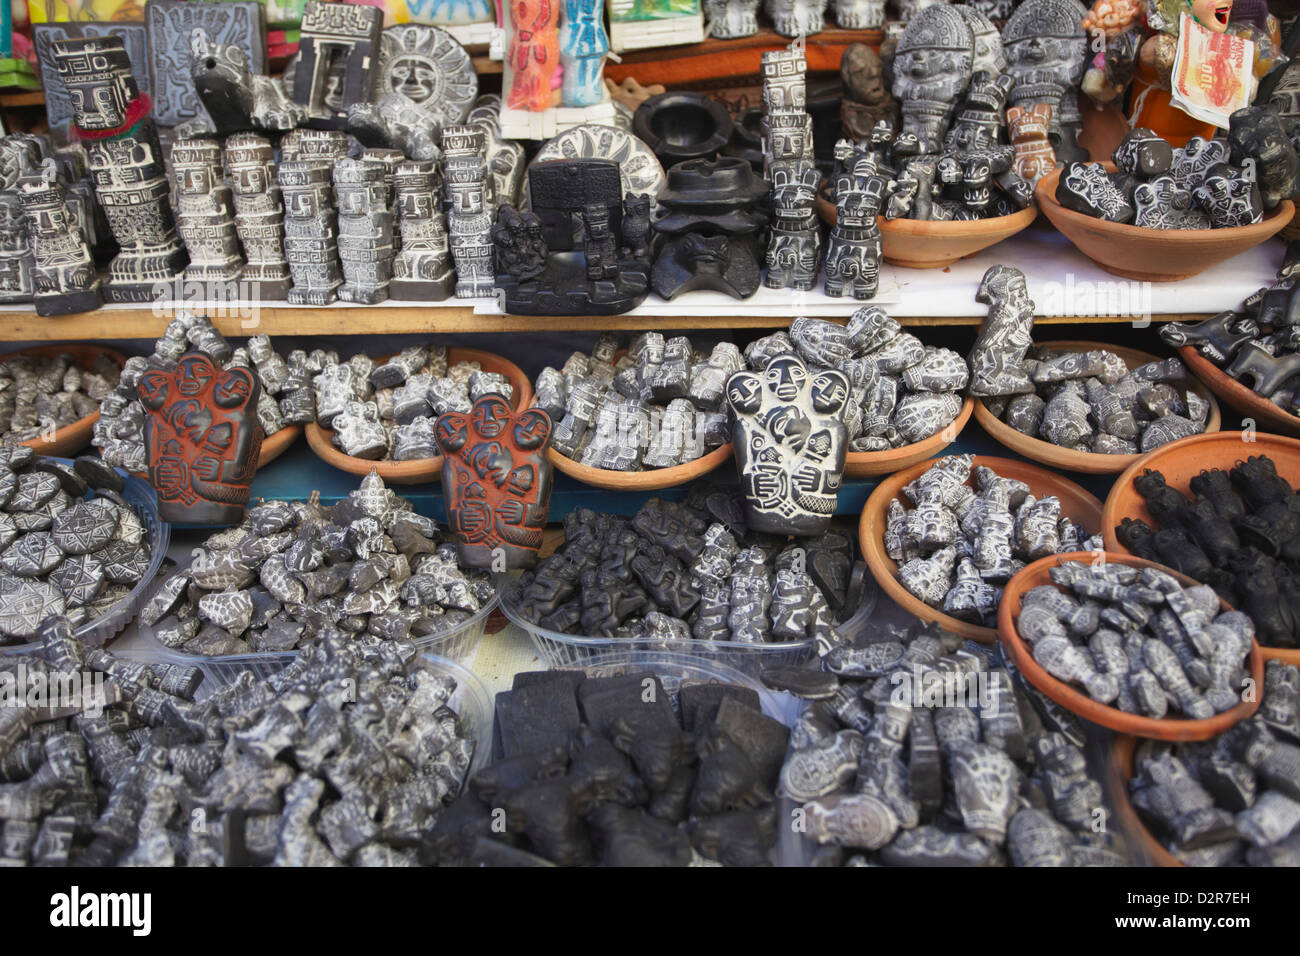 Carved stone souvenirs in Witches' Market, La Paz, Bolivia, South America - Stock Image